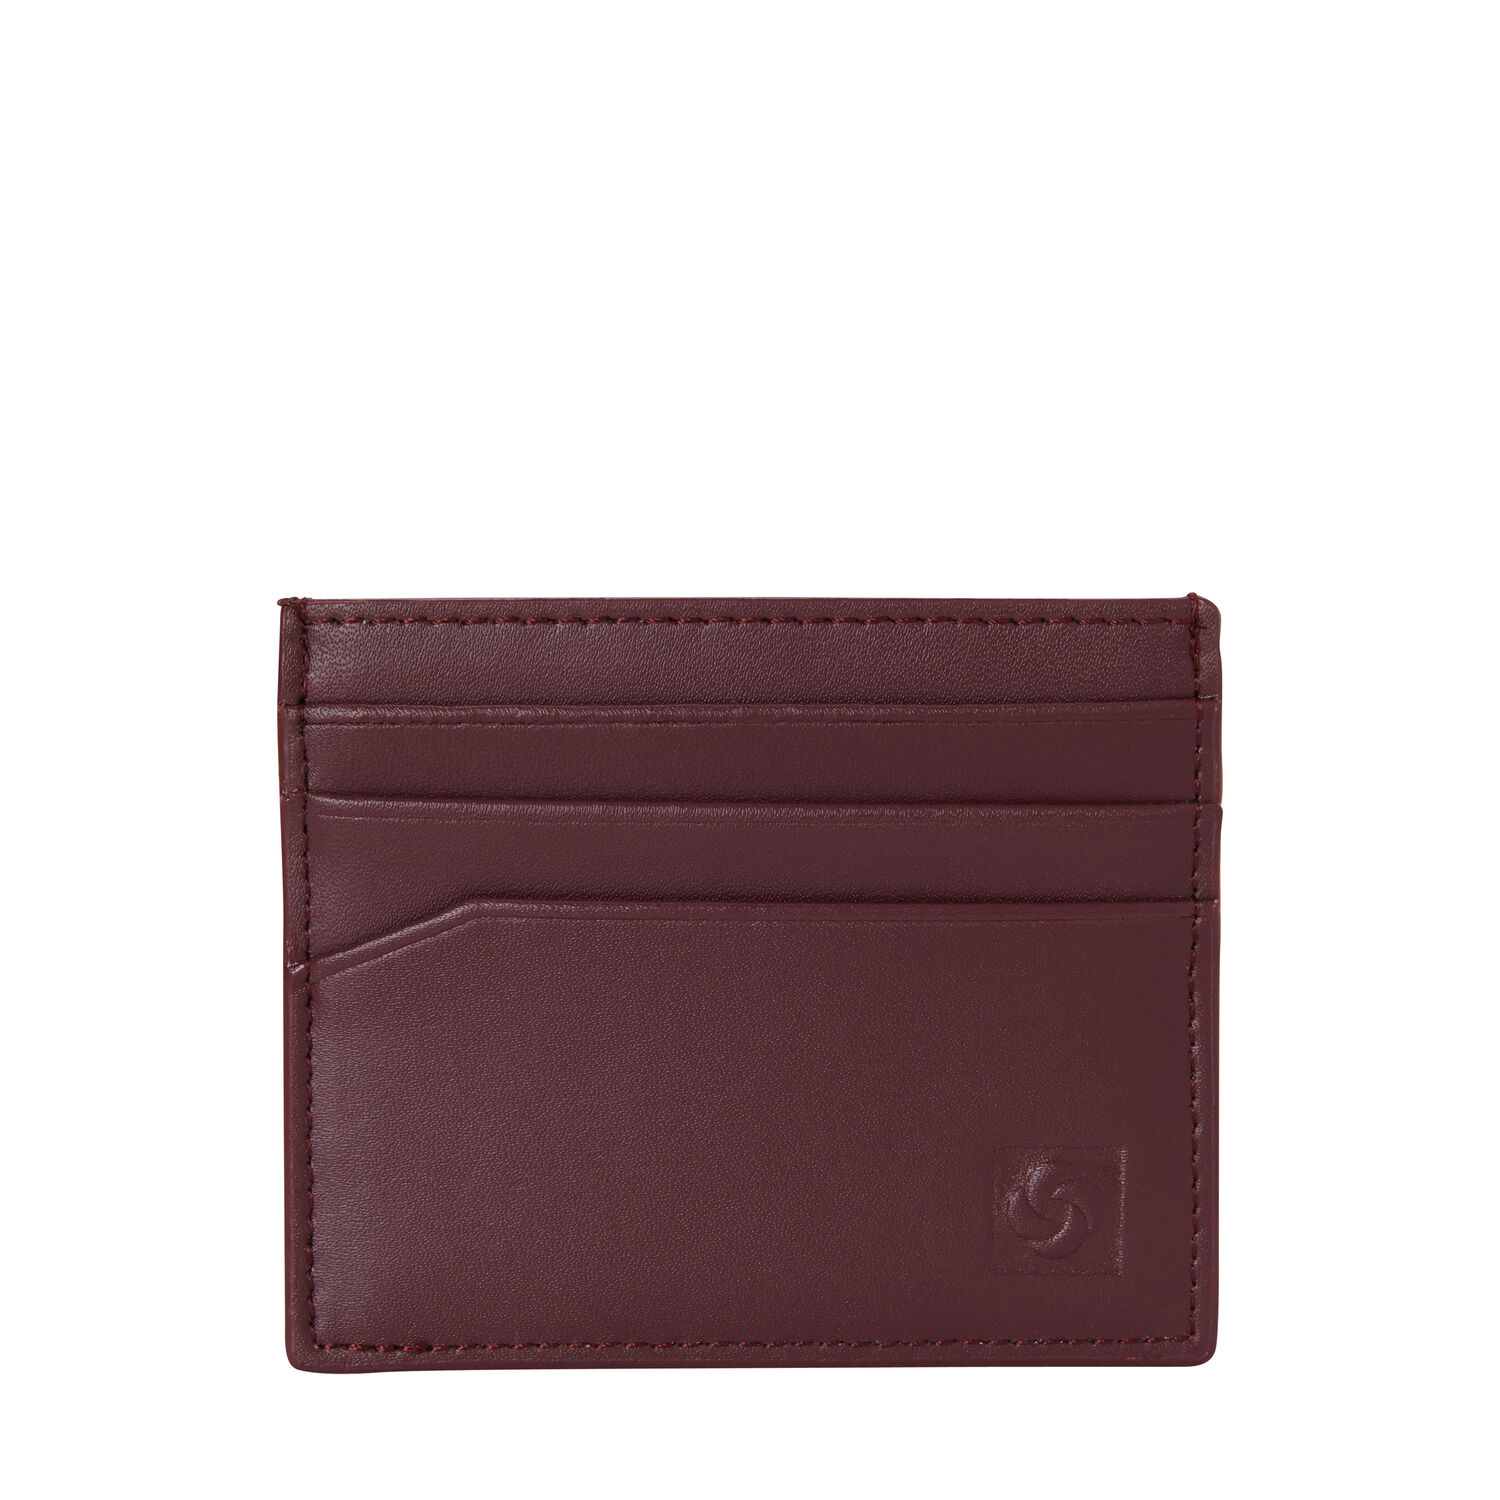 e961f22028534d Samsonite Leather Card Case in the color Sangria. Loading zoom